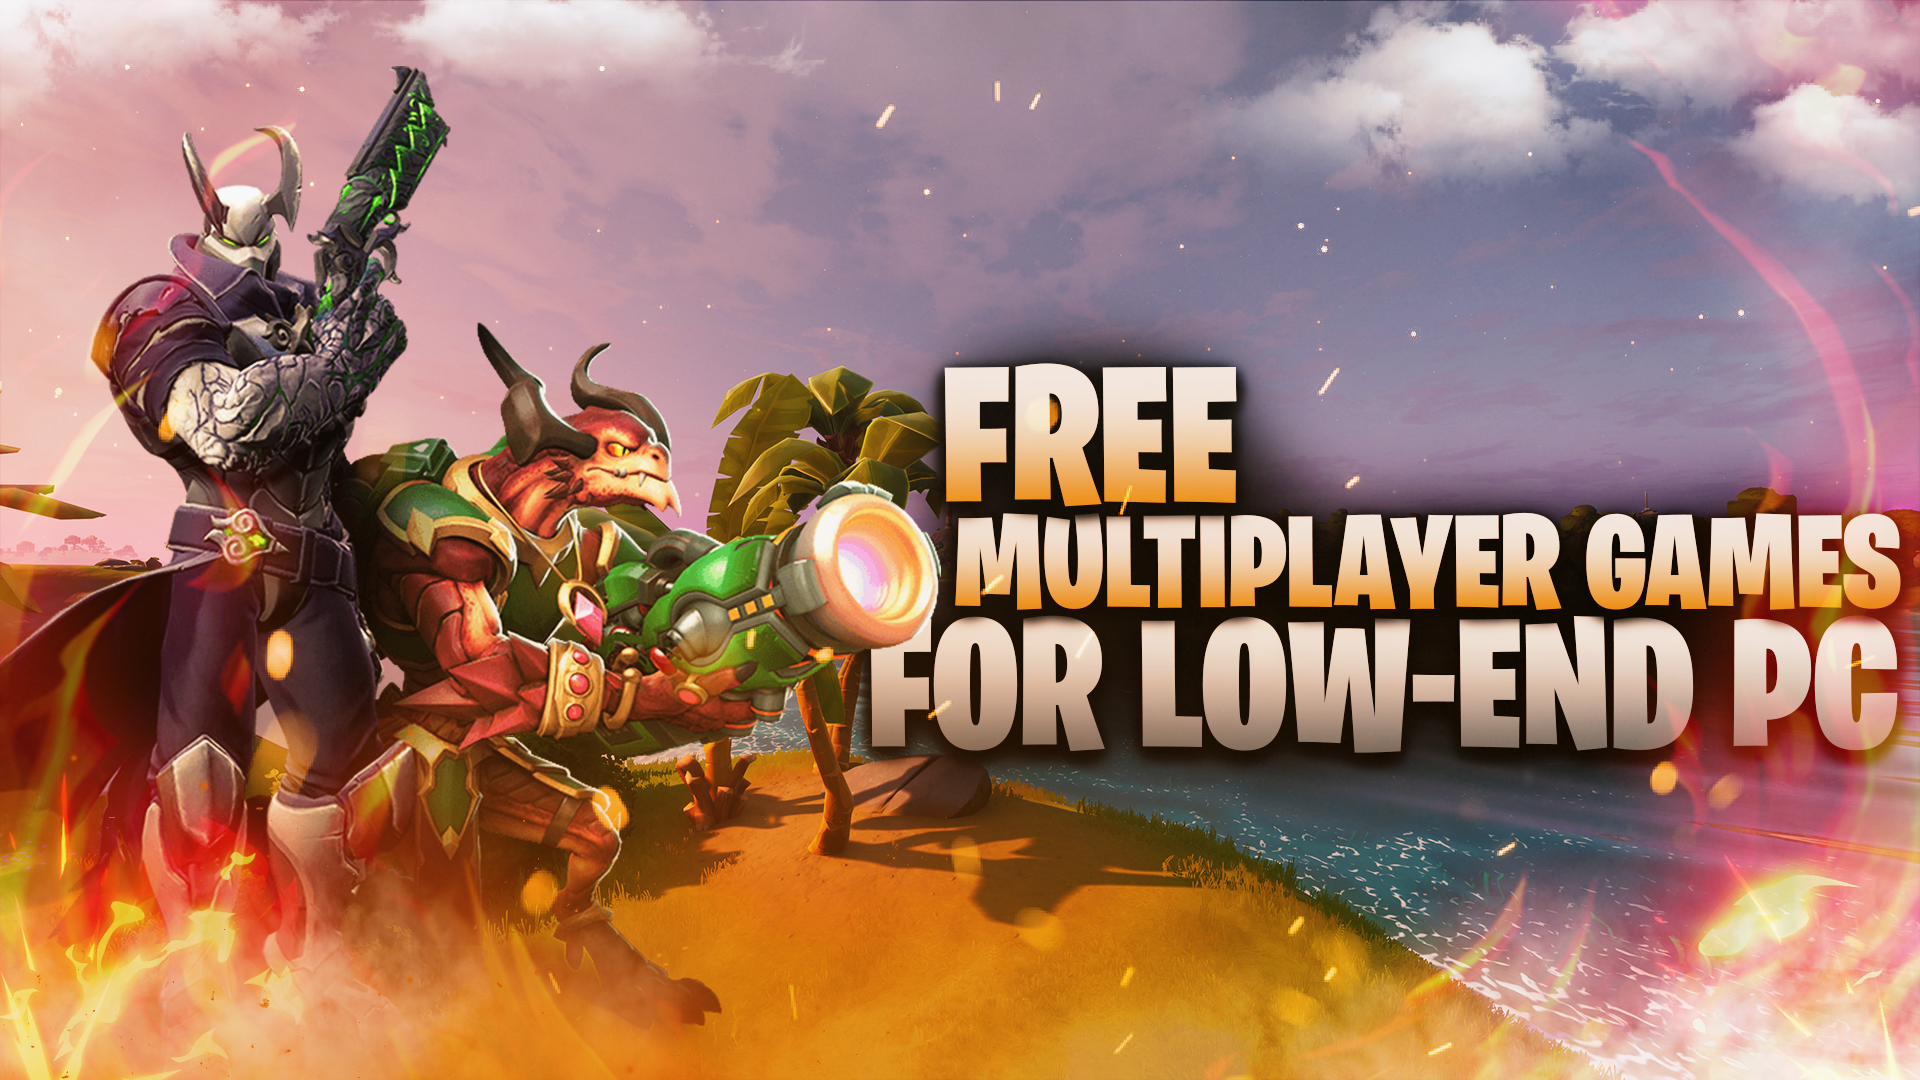 Best Free Multiplayer Games For Low End Pc Multiplayer Games Free Multiplayer Games Games